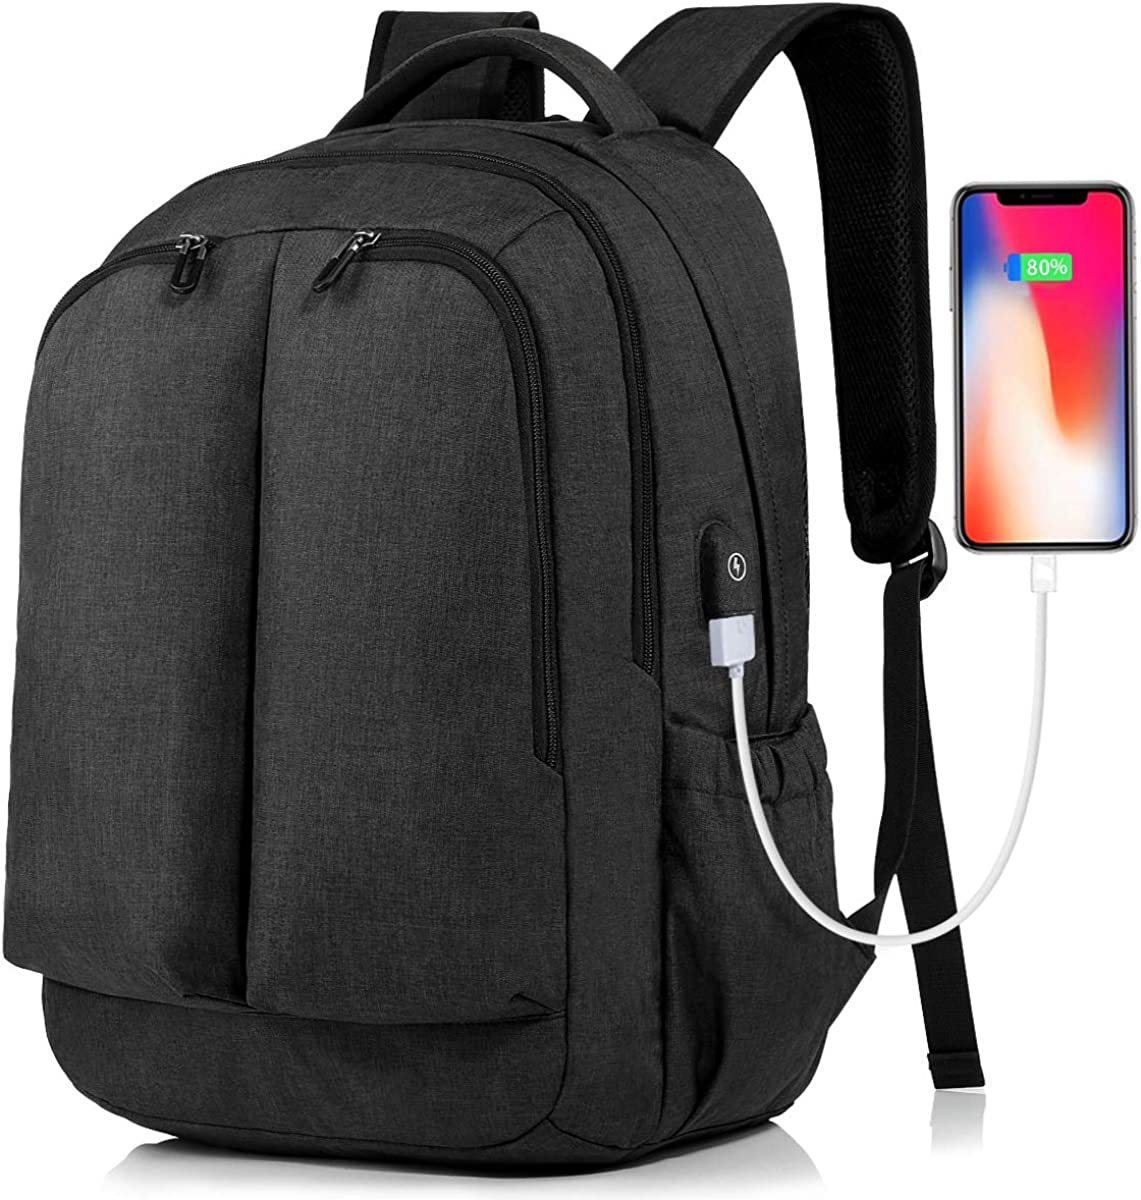 17 Inch Laptop Backpack Large Travel Bag with USB Charging Port and Earphone Hole for Travel/Business/College/Women/Men